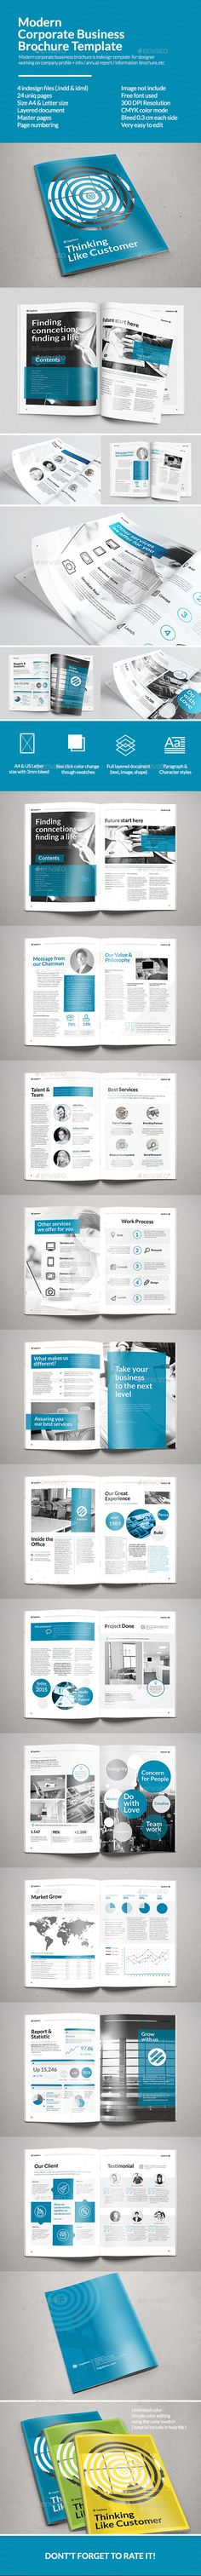 Corporate Business Brochure — InDesign INDD #template #professional • Available here → https://graphicriver.net/item/corporate-business-brochure/10863243?ref=pxcr